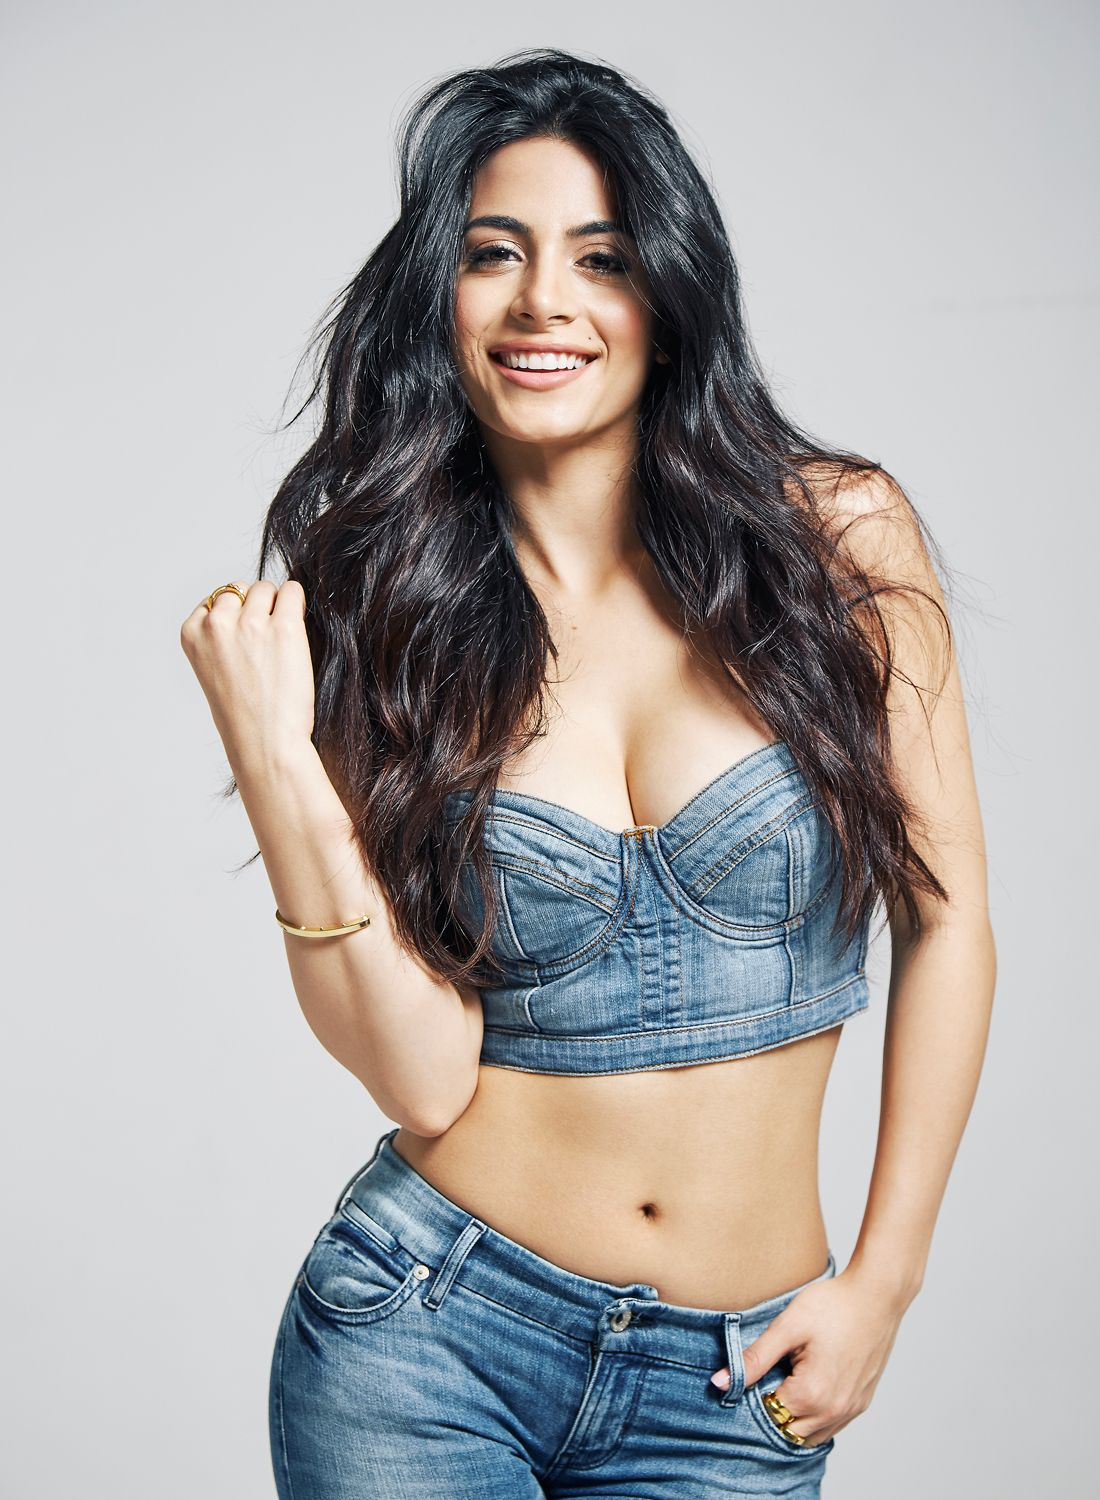 Emeraude Toubia Nude Photos 85